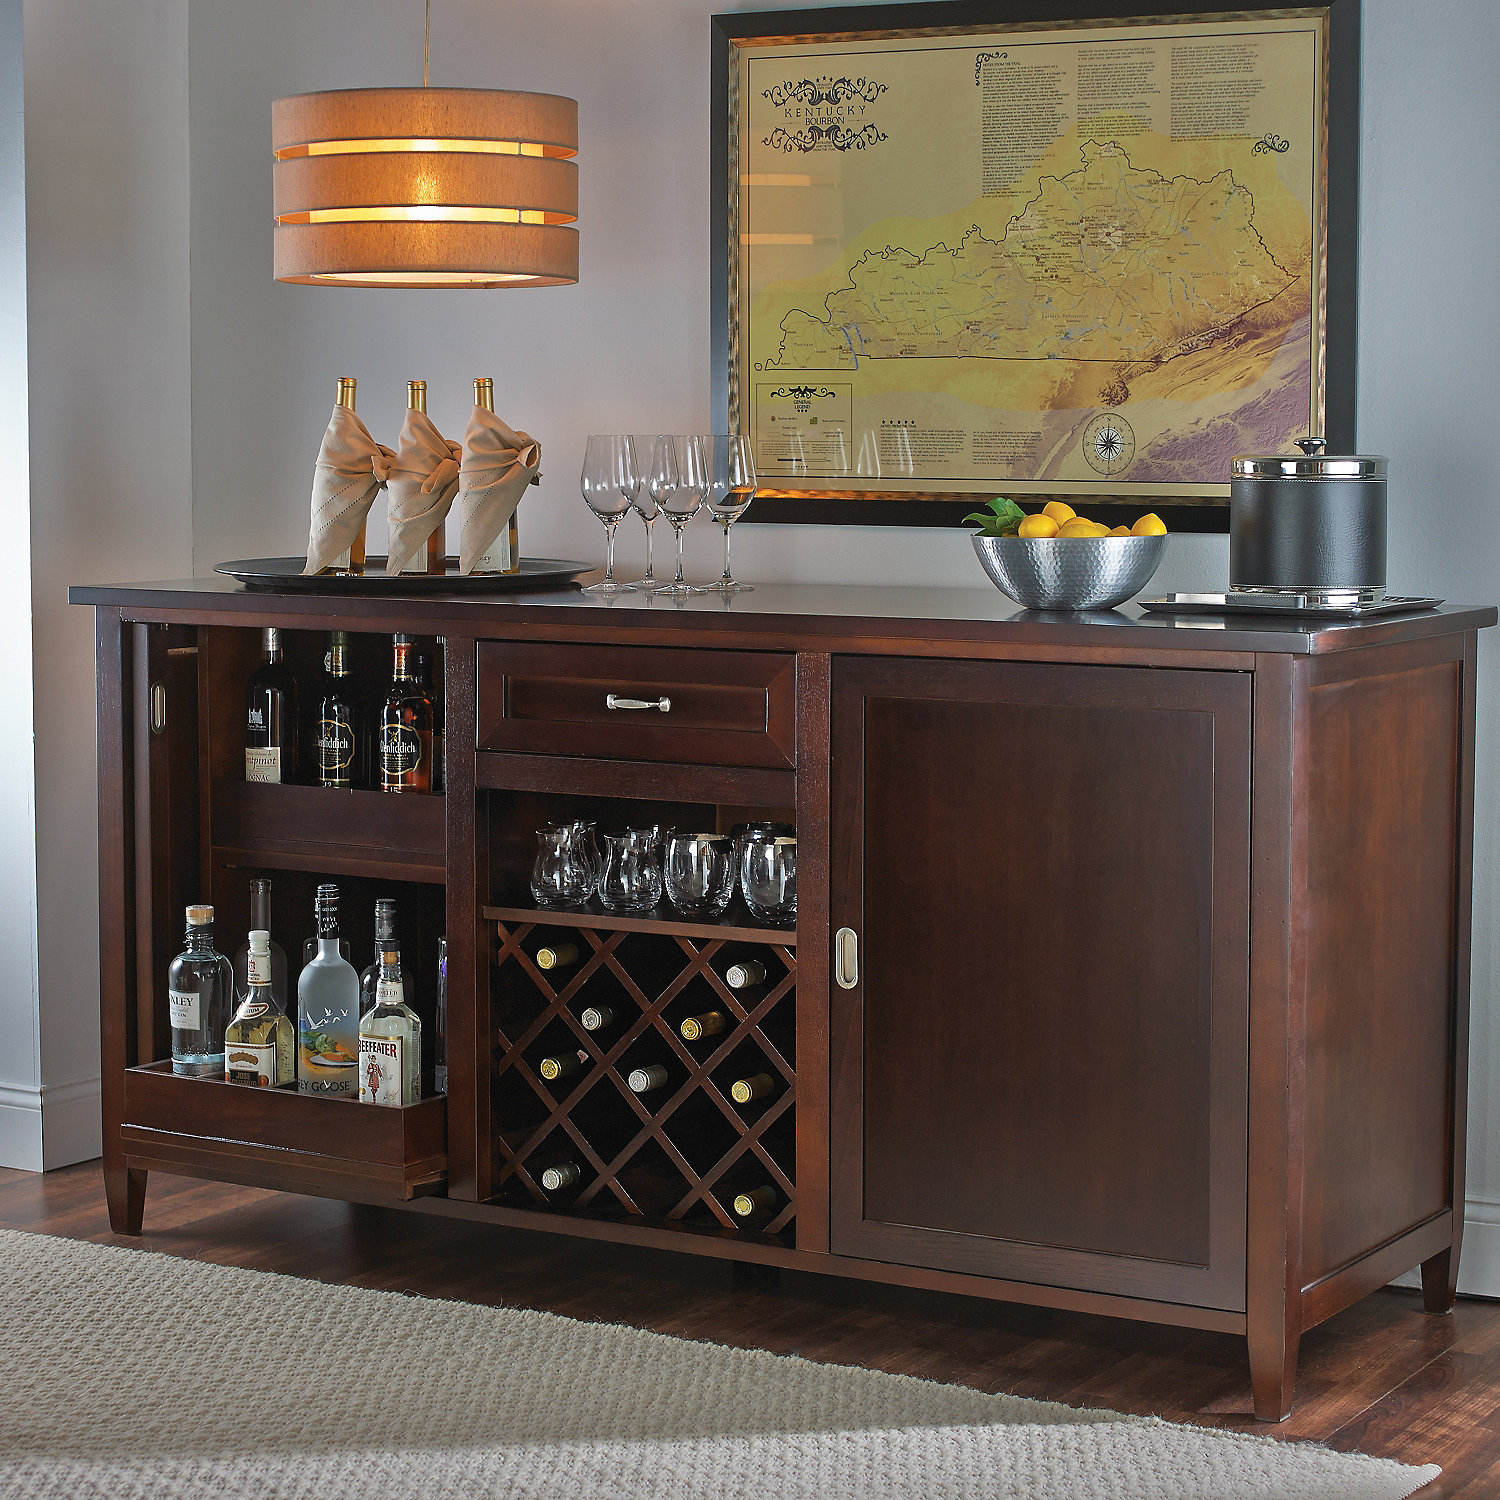 Firenze Wine and Spirits Credenza - Wine Enthusiast on wine cooler stand, wine cooler furniture, wine cooler cherry, wine cooler box, wine cooler dining room, wine cooler kitchen, wine cooler microwave, wine cooler storage, wine cooler shelves, wine cooler mirror, wine cooler brands, wine cooler computer, wine cooler office, wine cooler drinks, wine cooler flavors, wine cooler bench, wine cooler with granite top, wine cooler cabinet, wine cooler table, wine cooler bar,